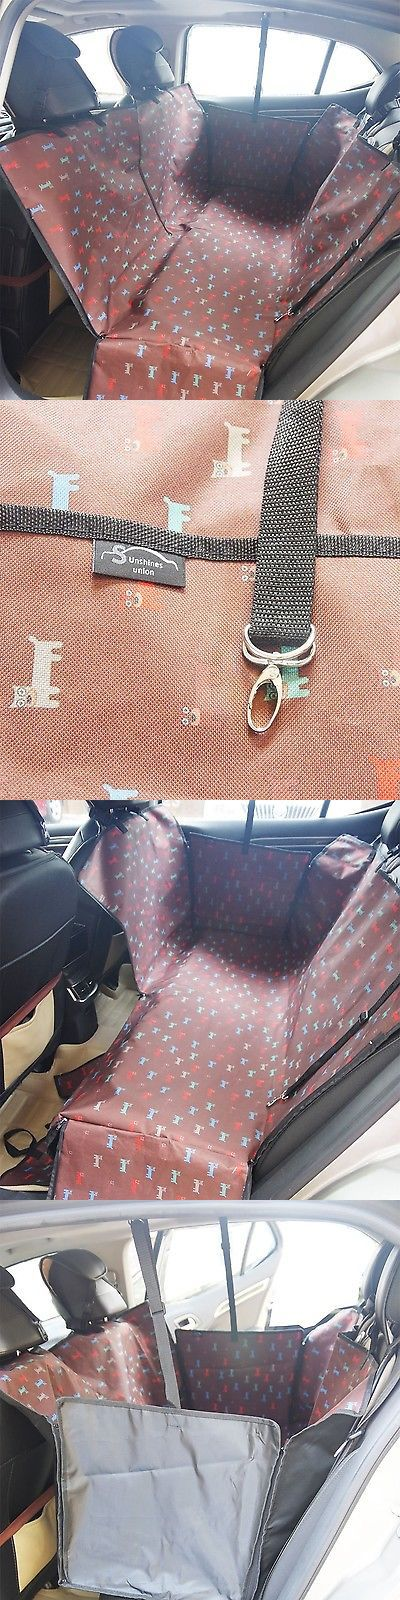 Car Seat Covers 117426: Waterproof Dog Car Seat Cover Backseat Large Pet Seat Cover Hammock Mat F... New BUY IT NOW ONLY: $31.0